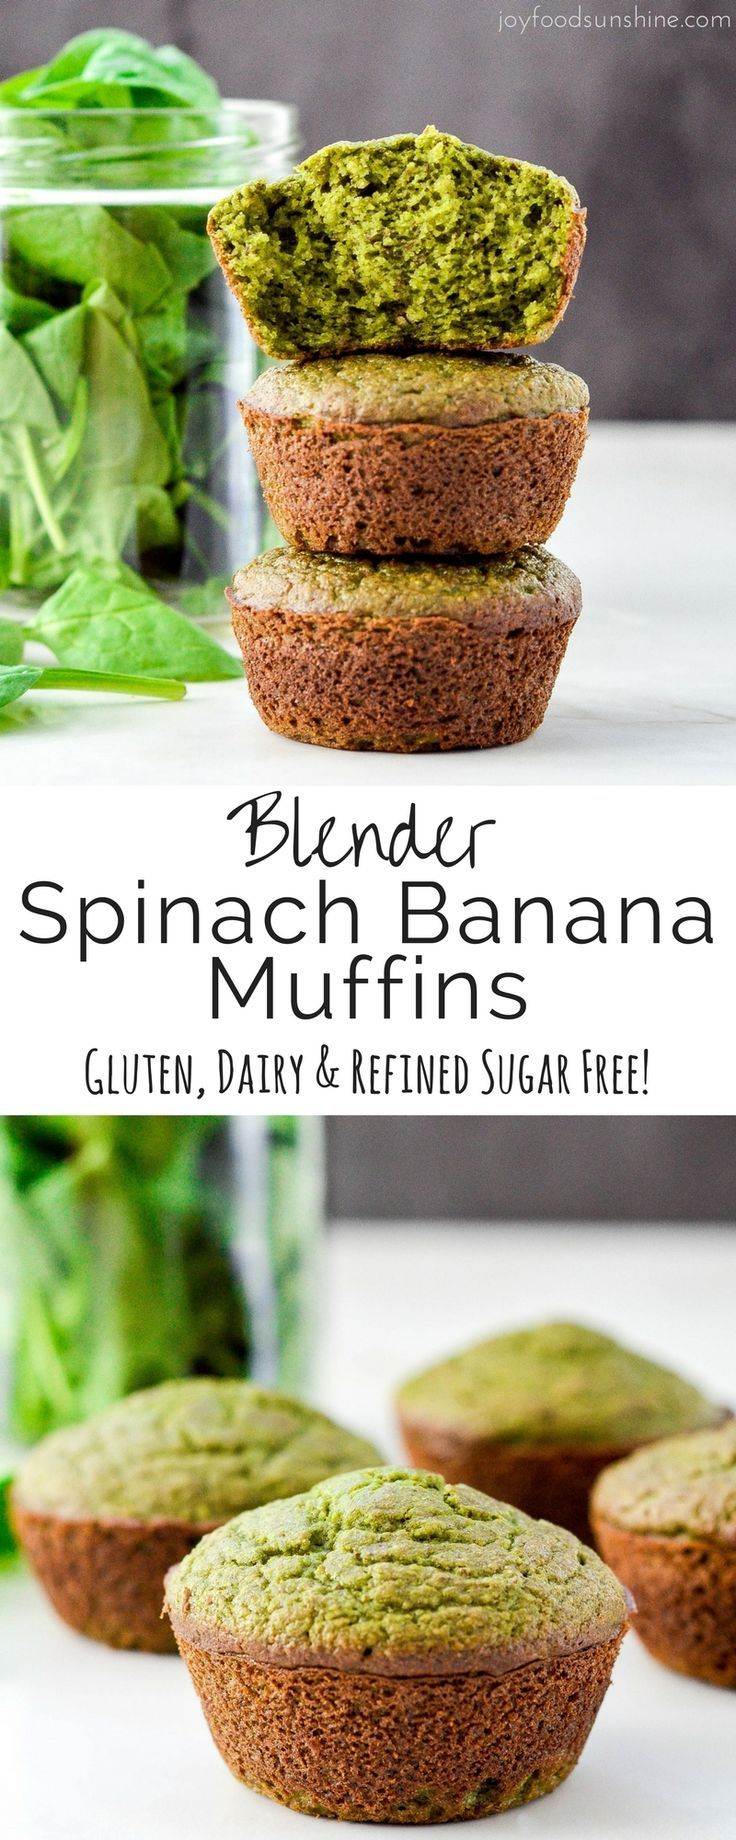 These blender Spinach Banana Muffins are an easy, healthy, freezer-friendly breakfast full of fruit and veggies! A recipe that your kids will love! Plus they're gluten-free, dairy-free and refined sugar free with a vegan option!